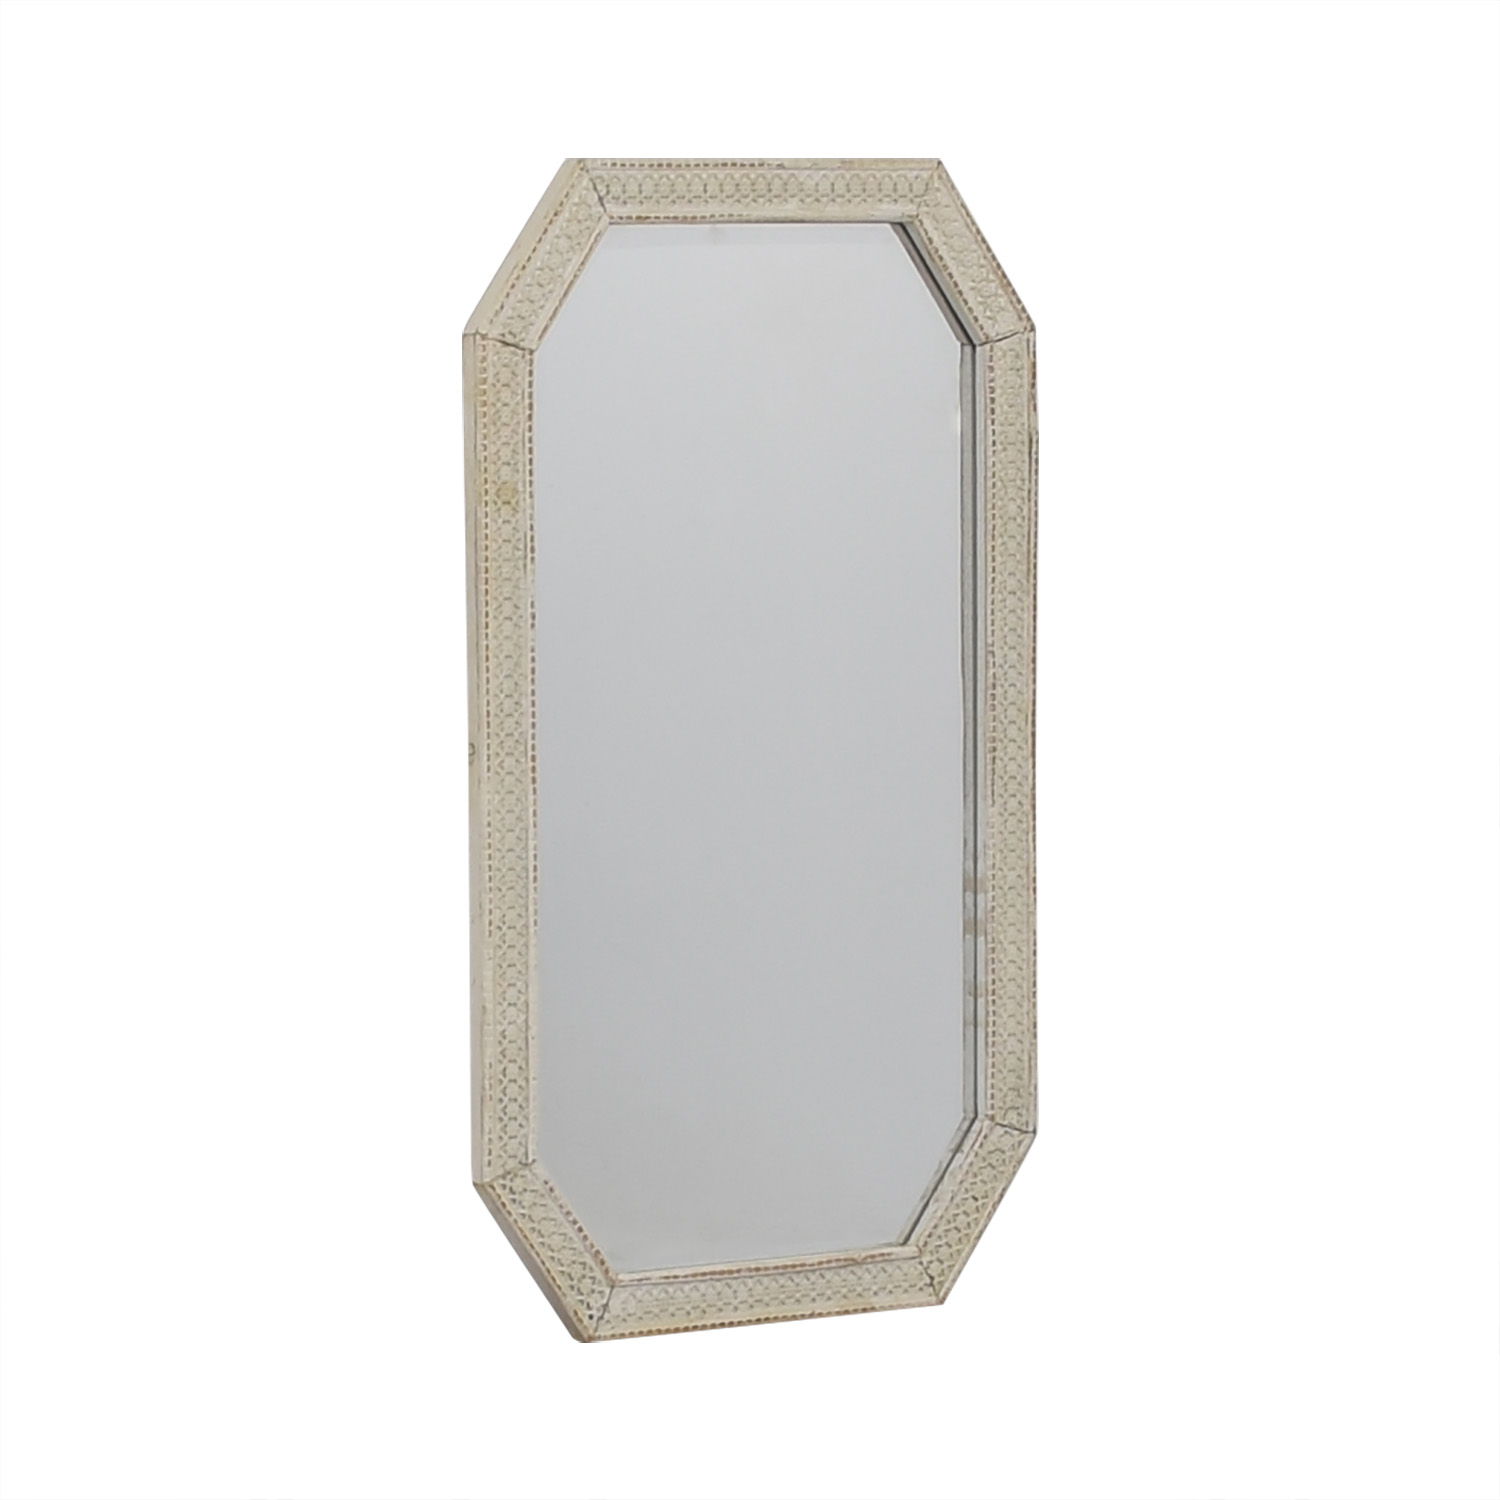 buy  Distressed White Indian Lattice Wall Mirror online